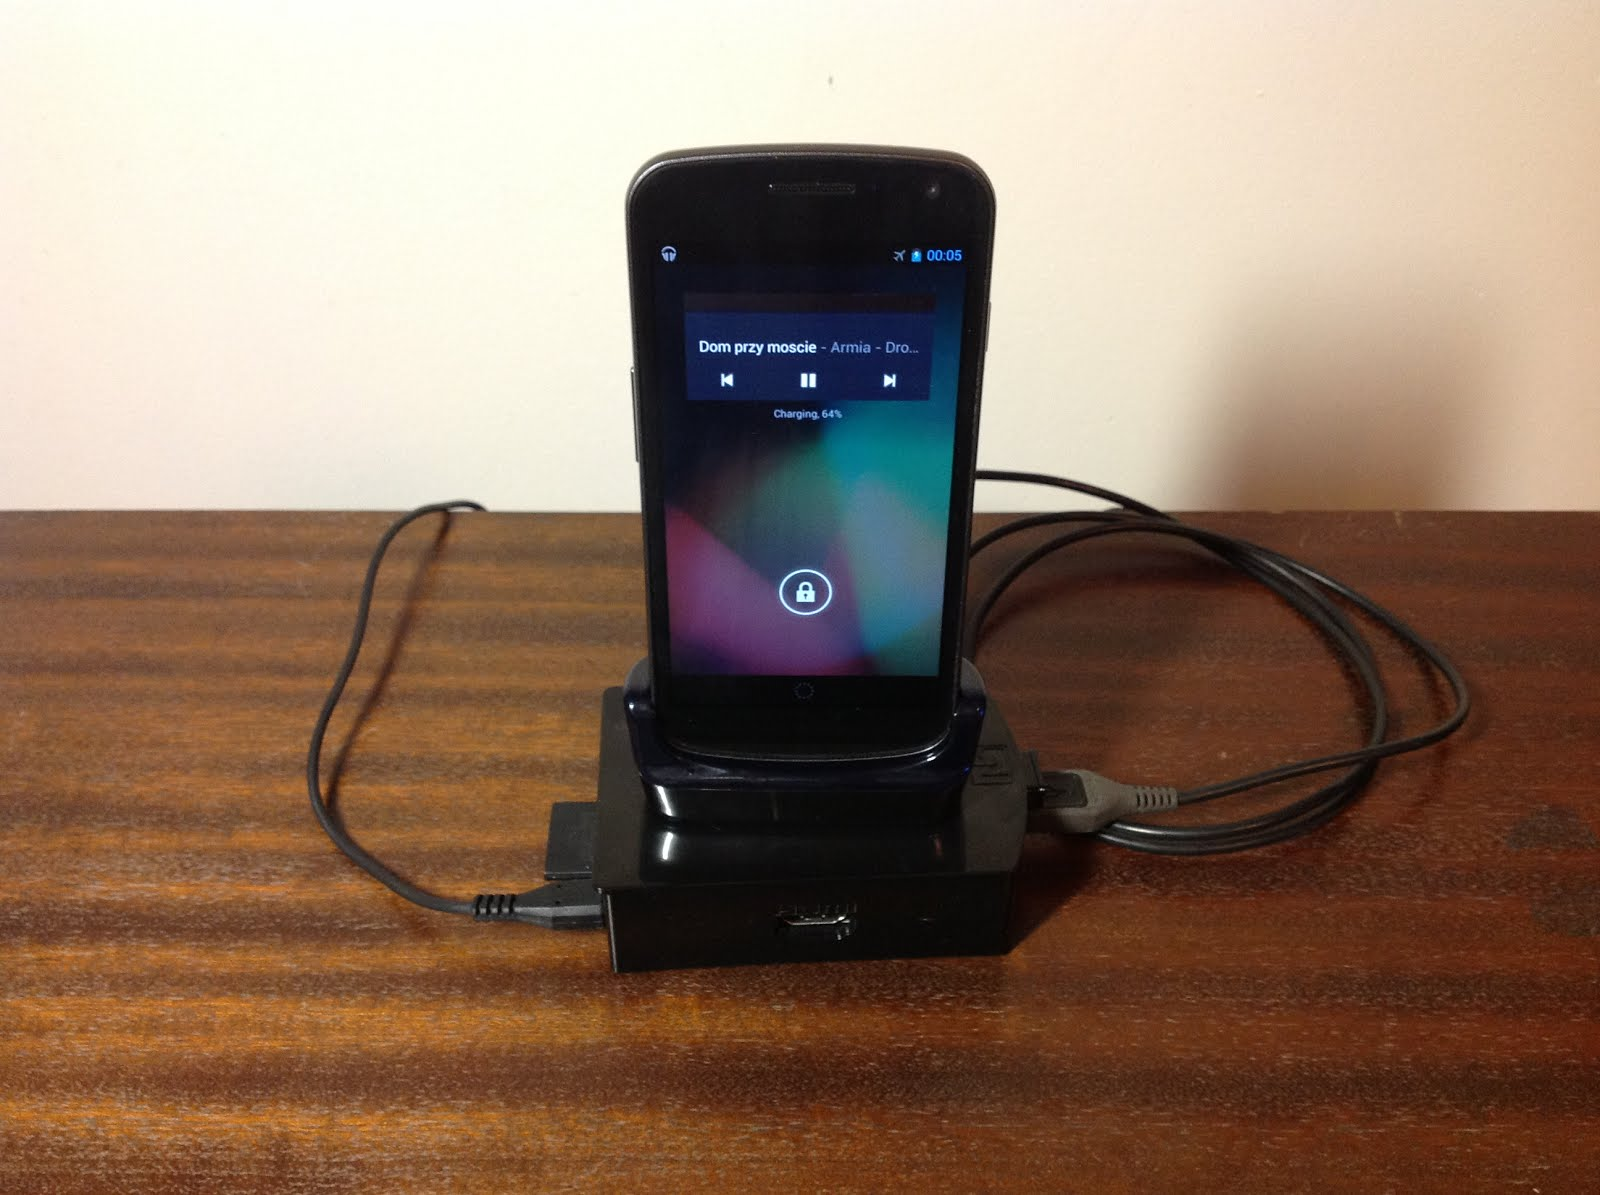 Phone Raspberry Pi Android Phone jacek blog usb audio dock for android i used a simple and raspberry pi the pis output is connected to my living room amplifier below describ